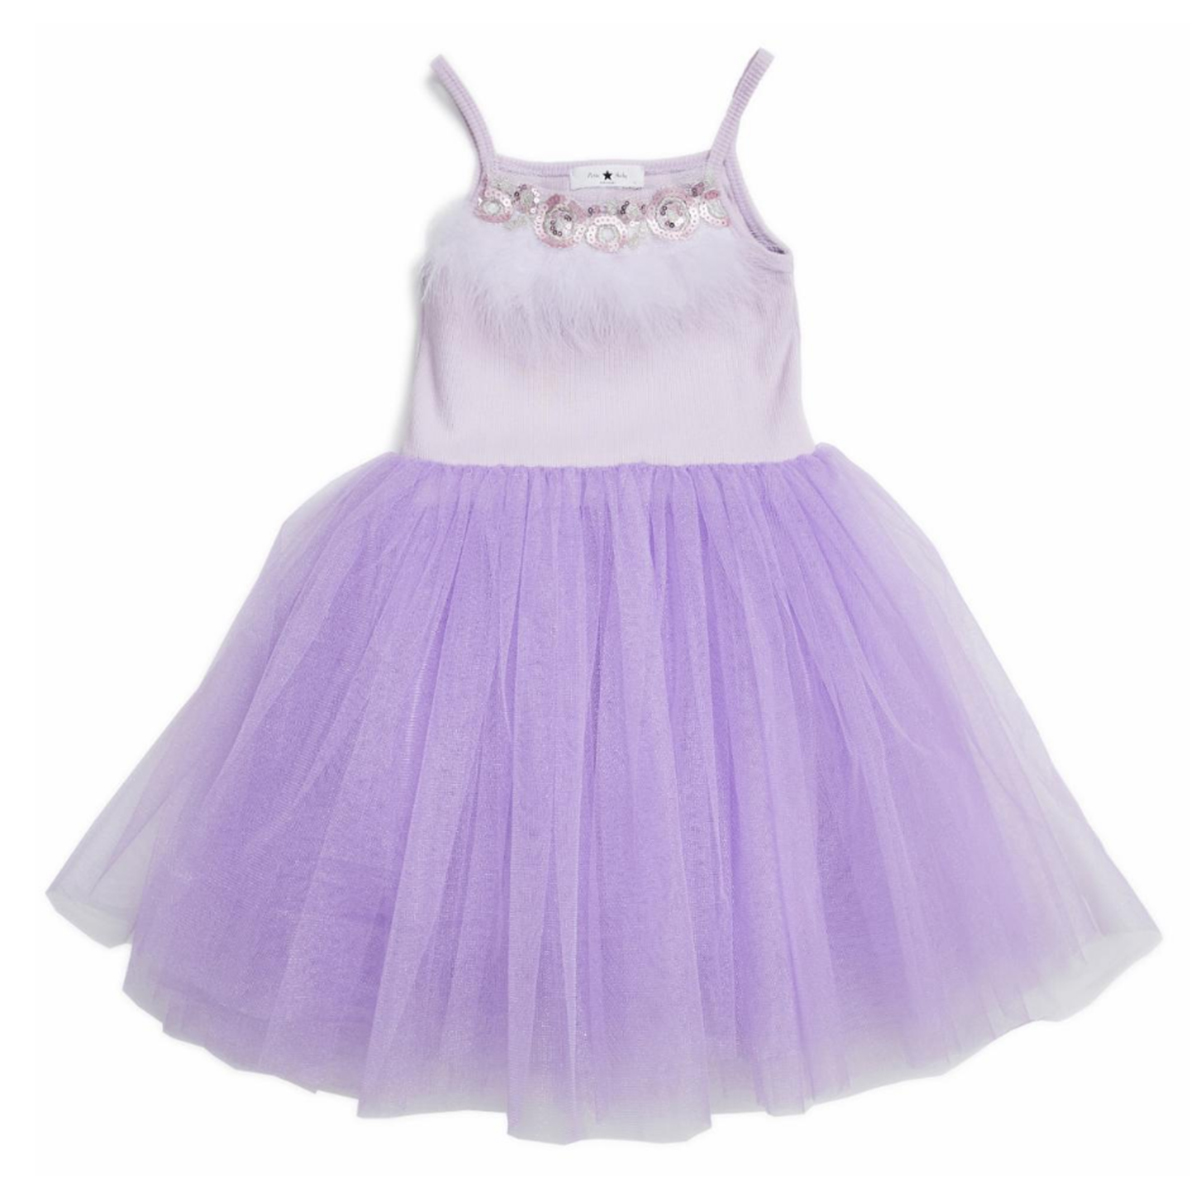 Petite Hailey SS19 Tutu Dress Feather Lavender